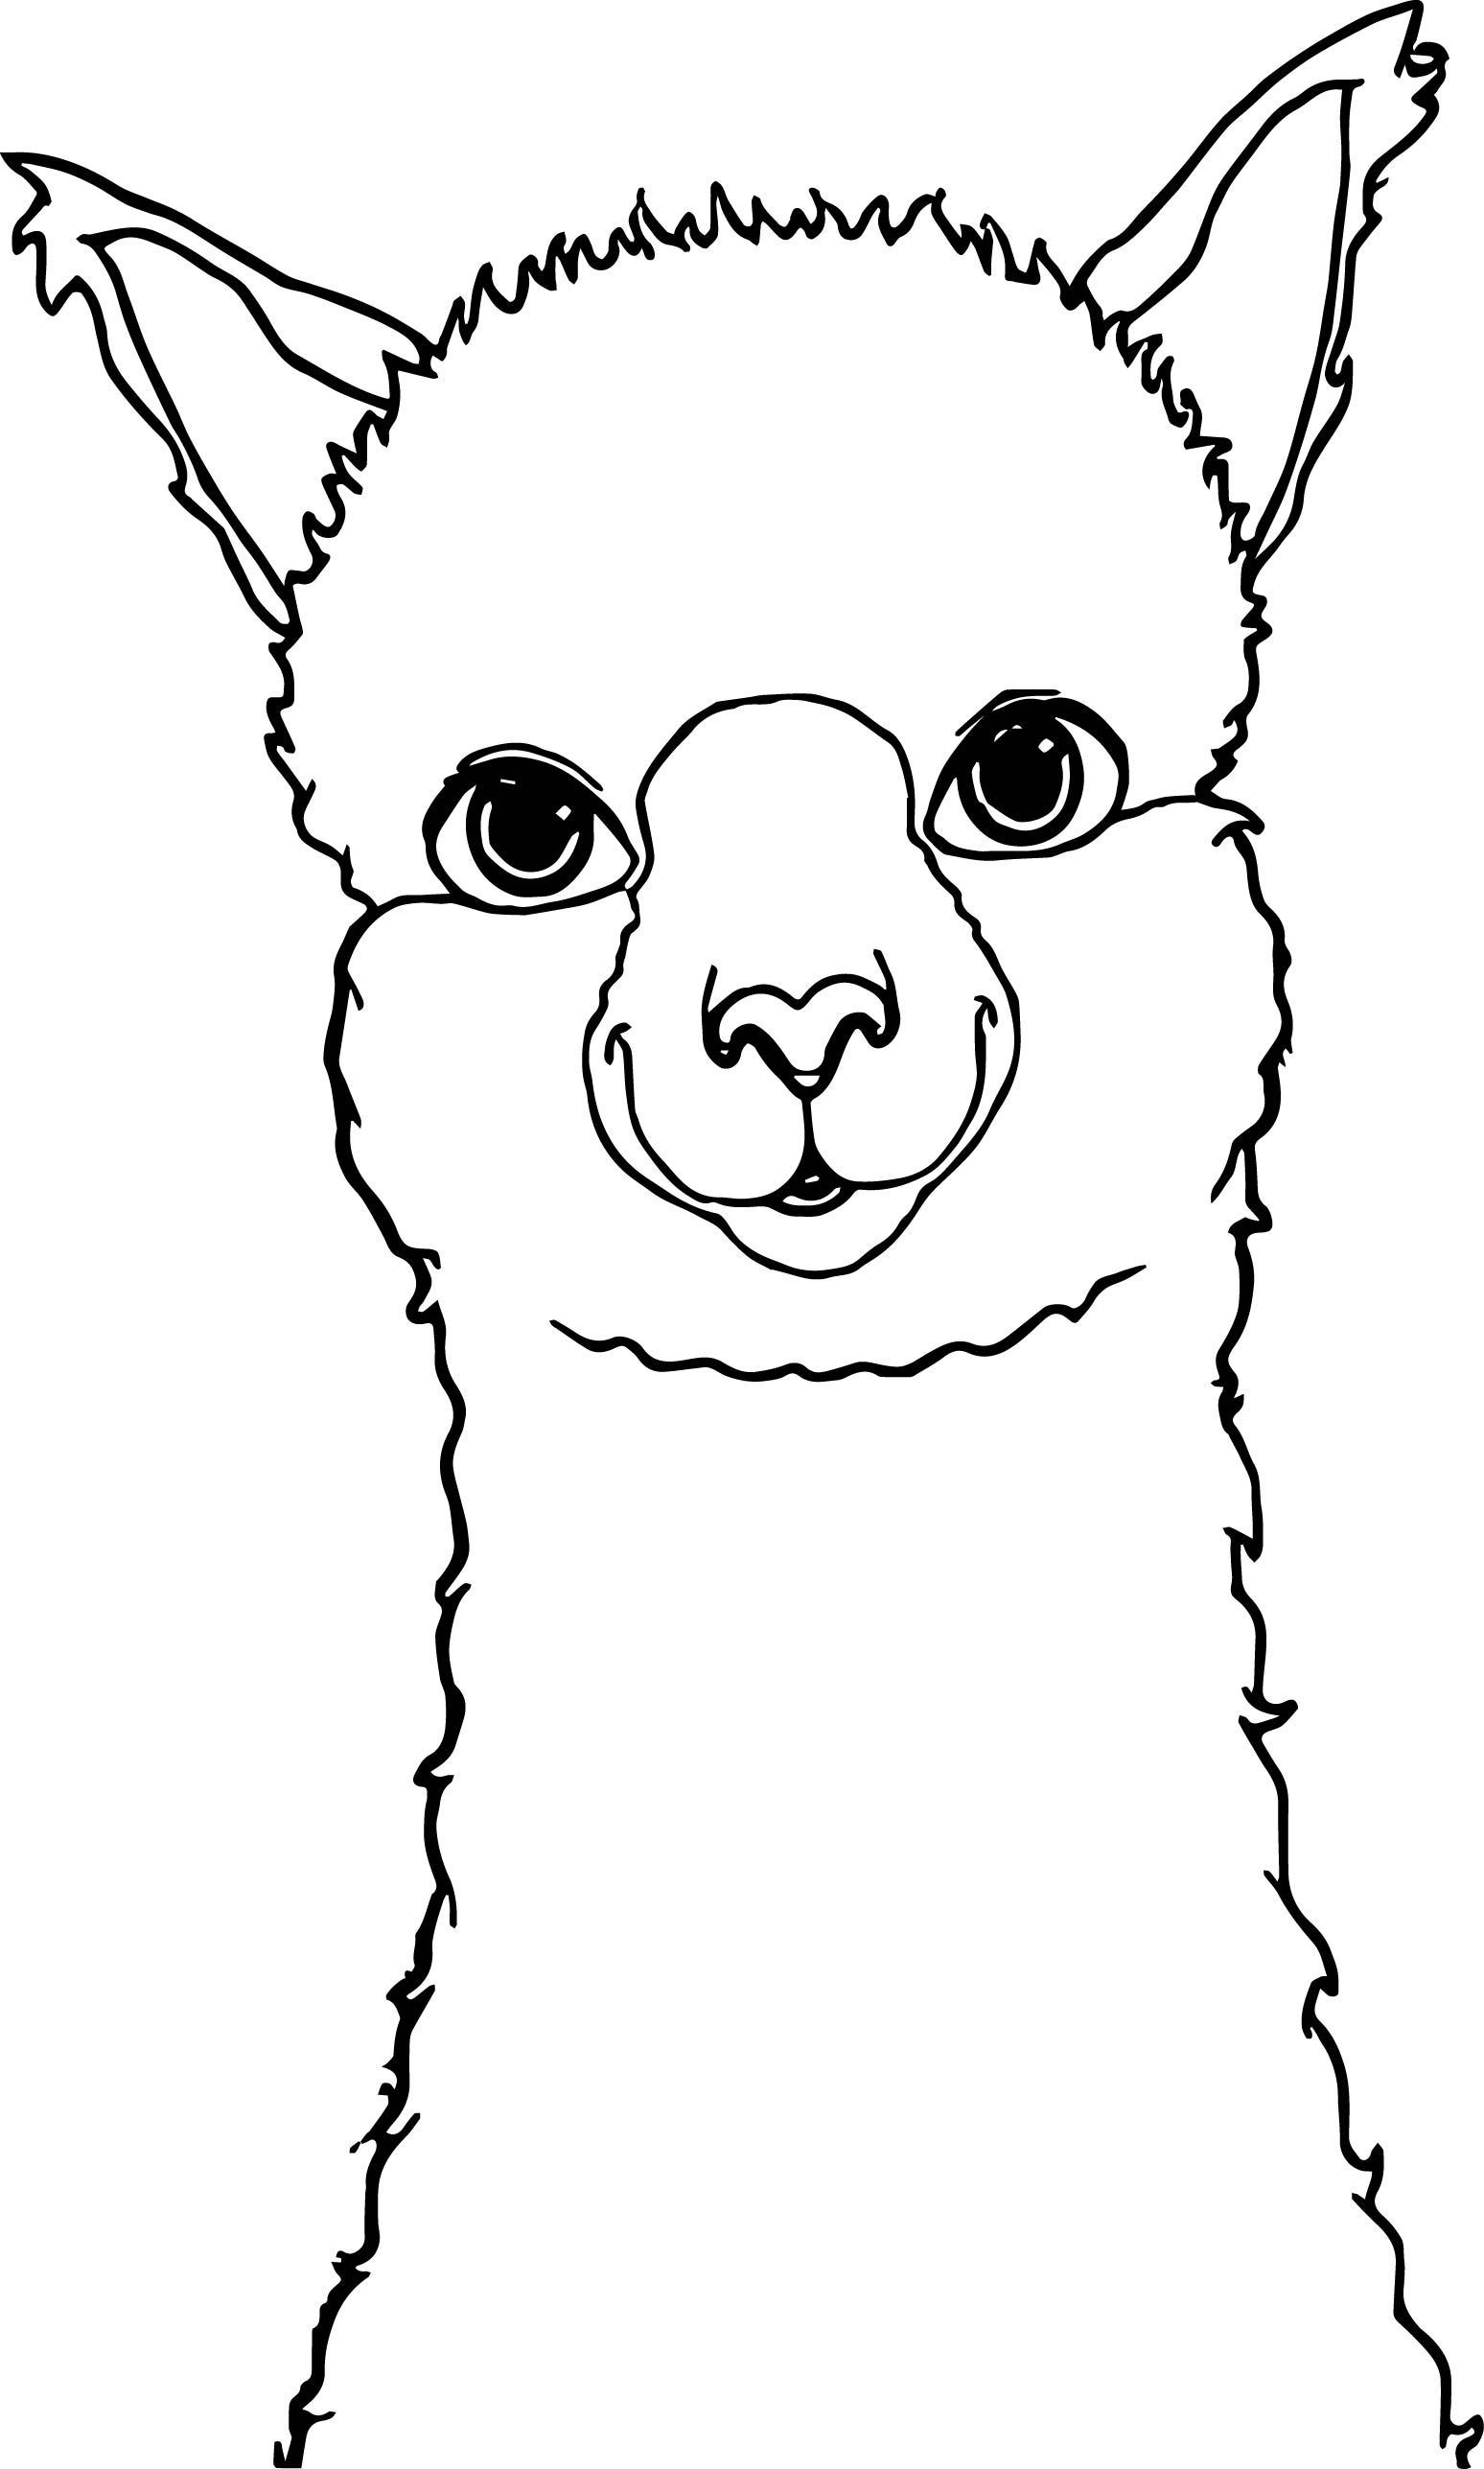 Related Image Alpaca Drawing Animal Coloring Pages Drawings